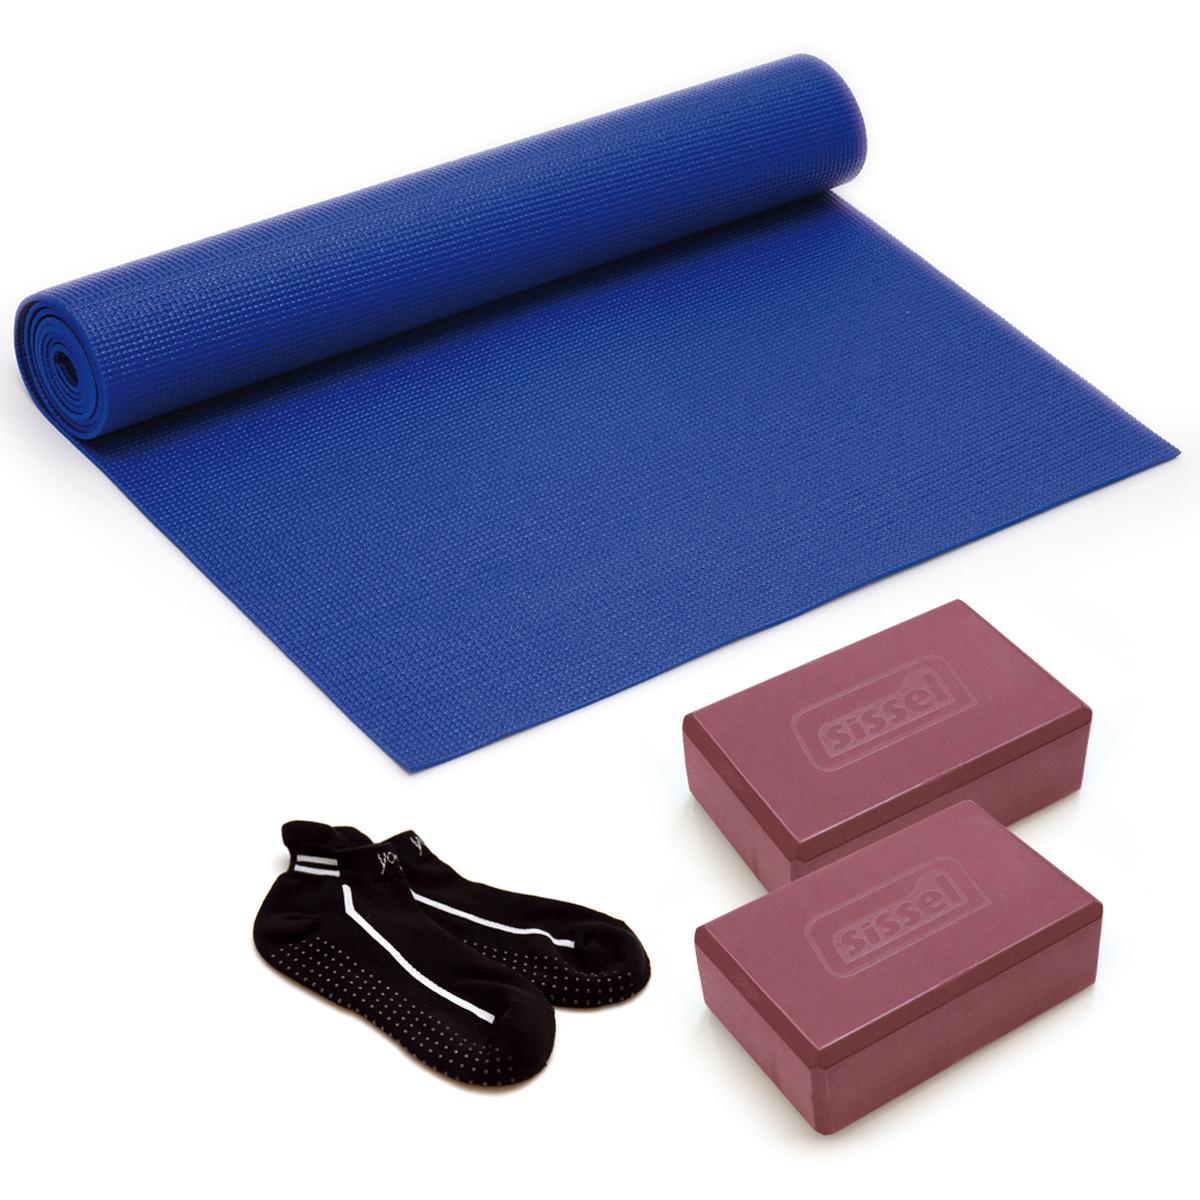 KIT YOGA: Calzini Yoga Socks, Materassino e 2 Blocchi